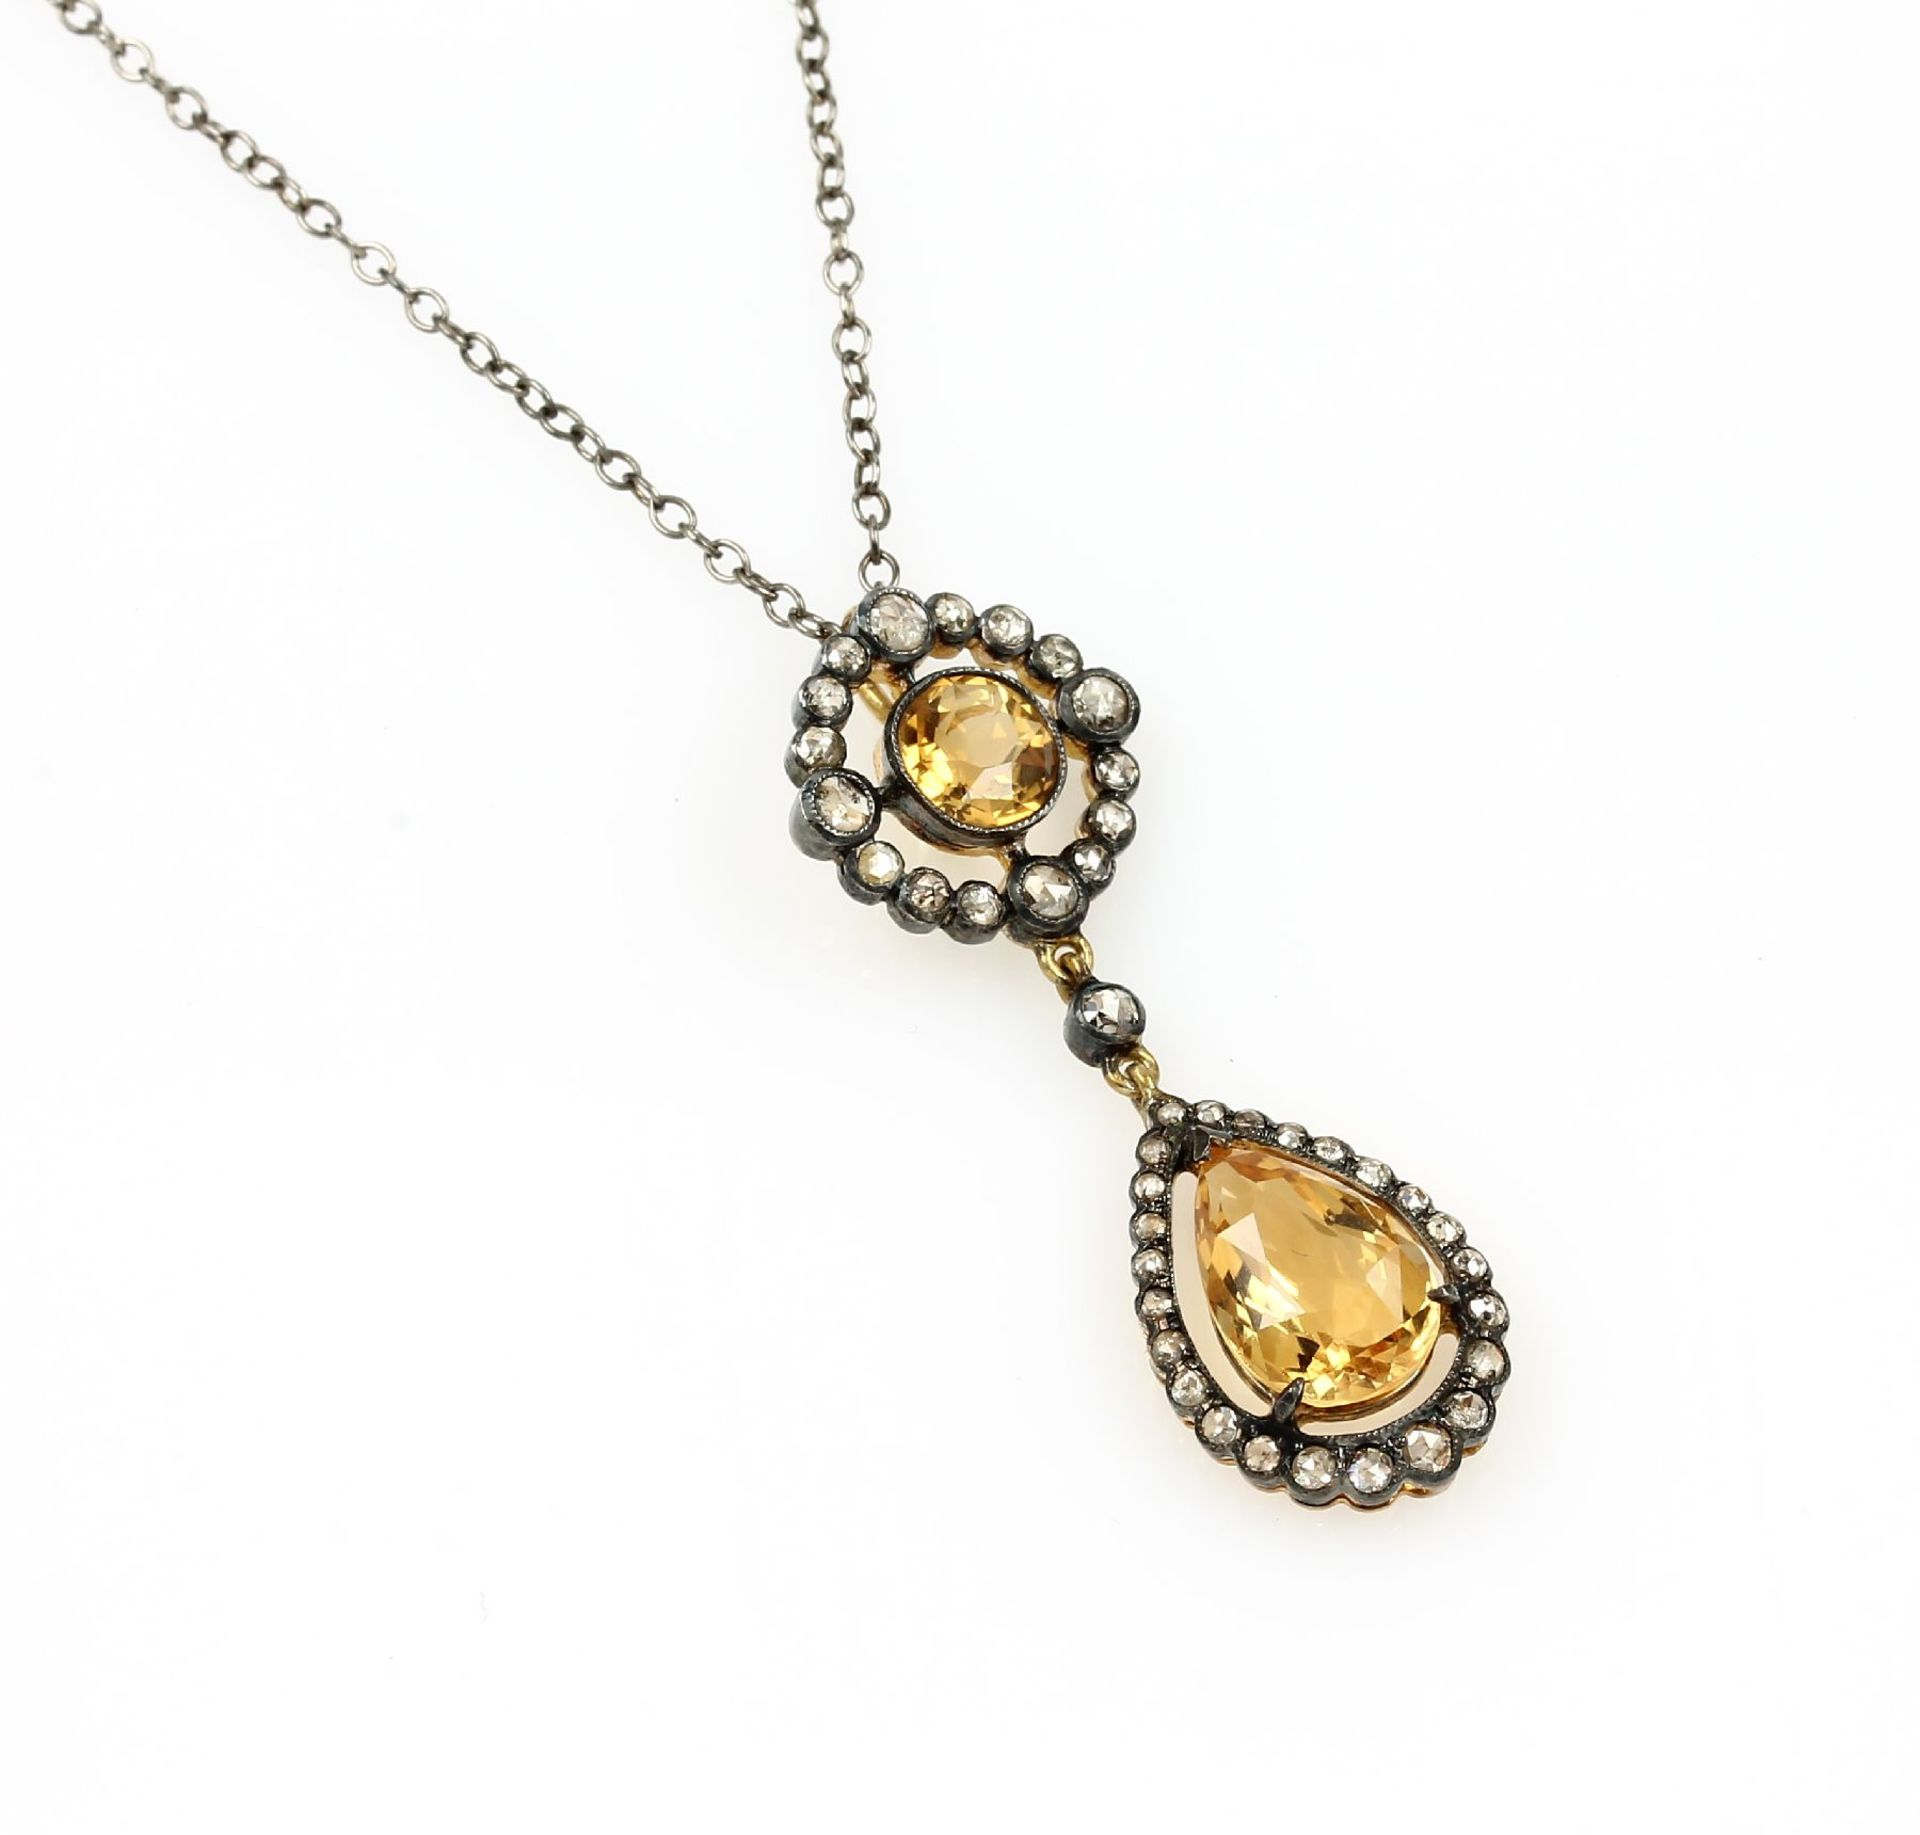 Los 61548 - Pendant with diamonds and citrines , 925er silver partly gilded, round bevelled and pearformed